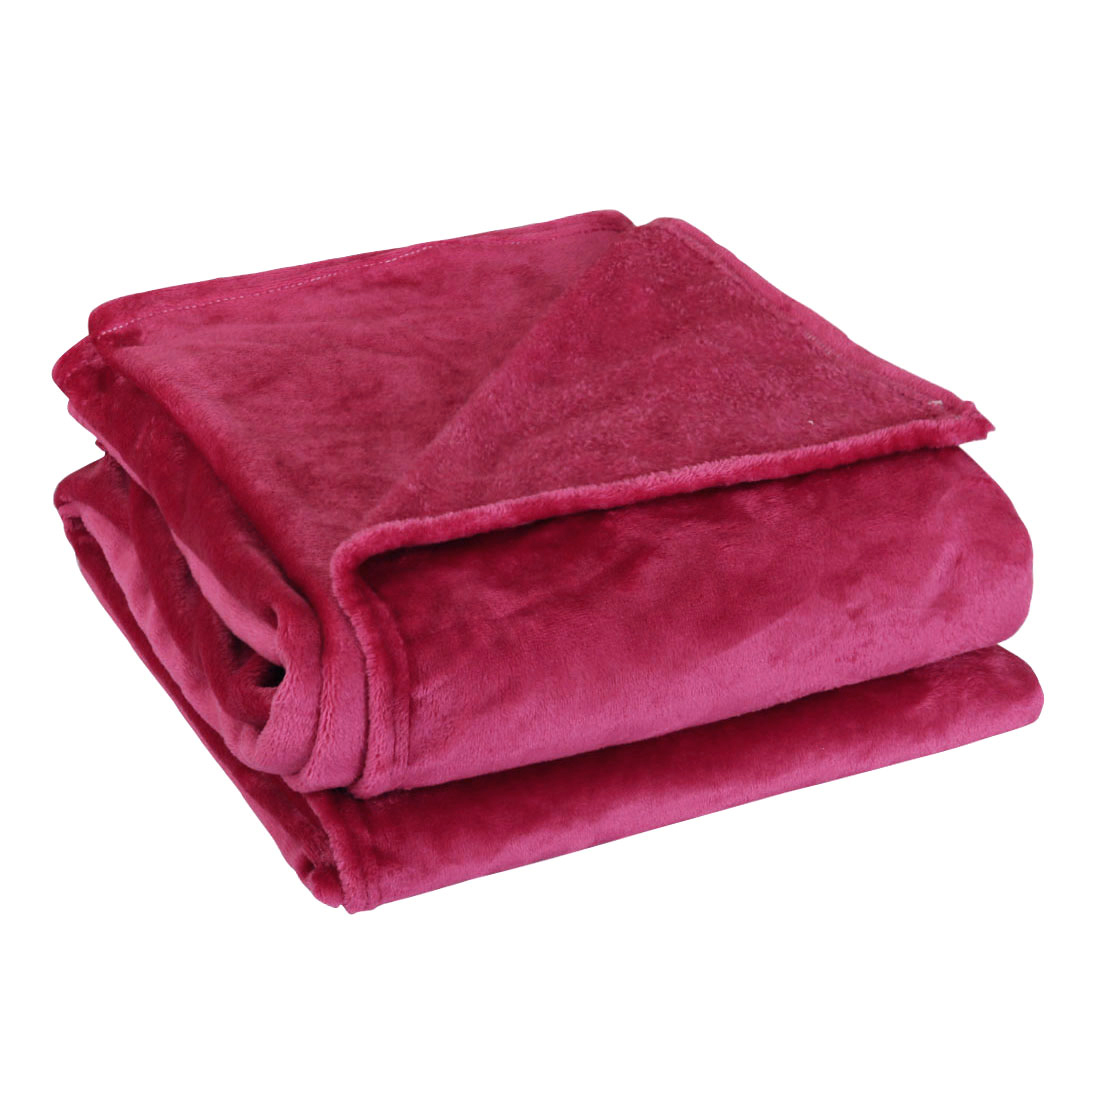 Unique Bargains Twin Size Bed Sofa Soft Fleece Throws Blanket Warm Soft